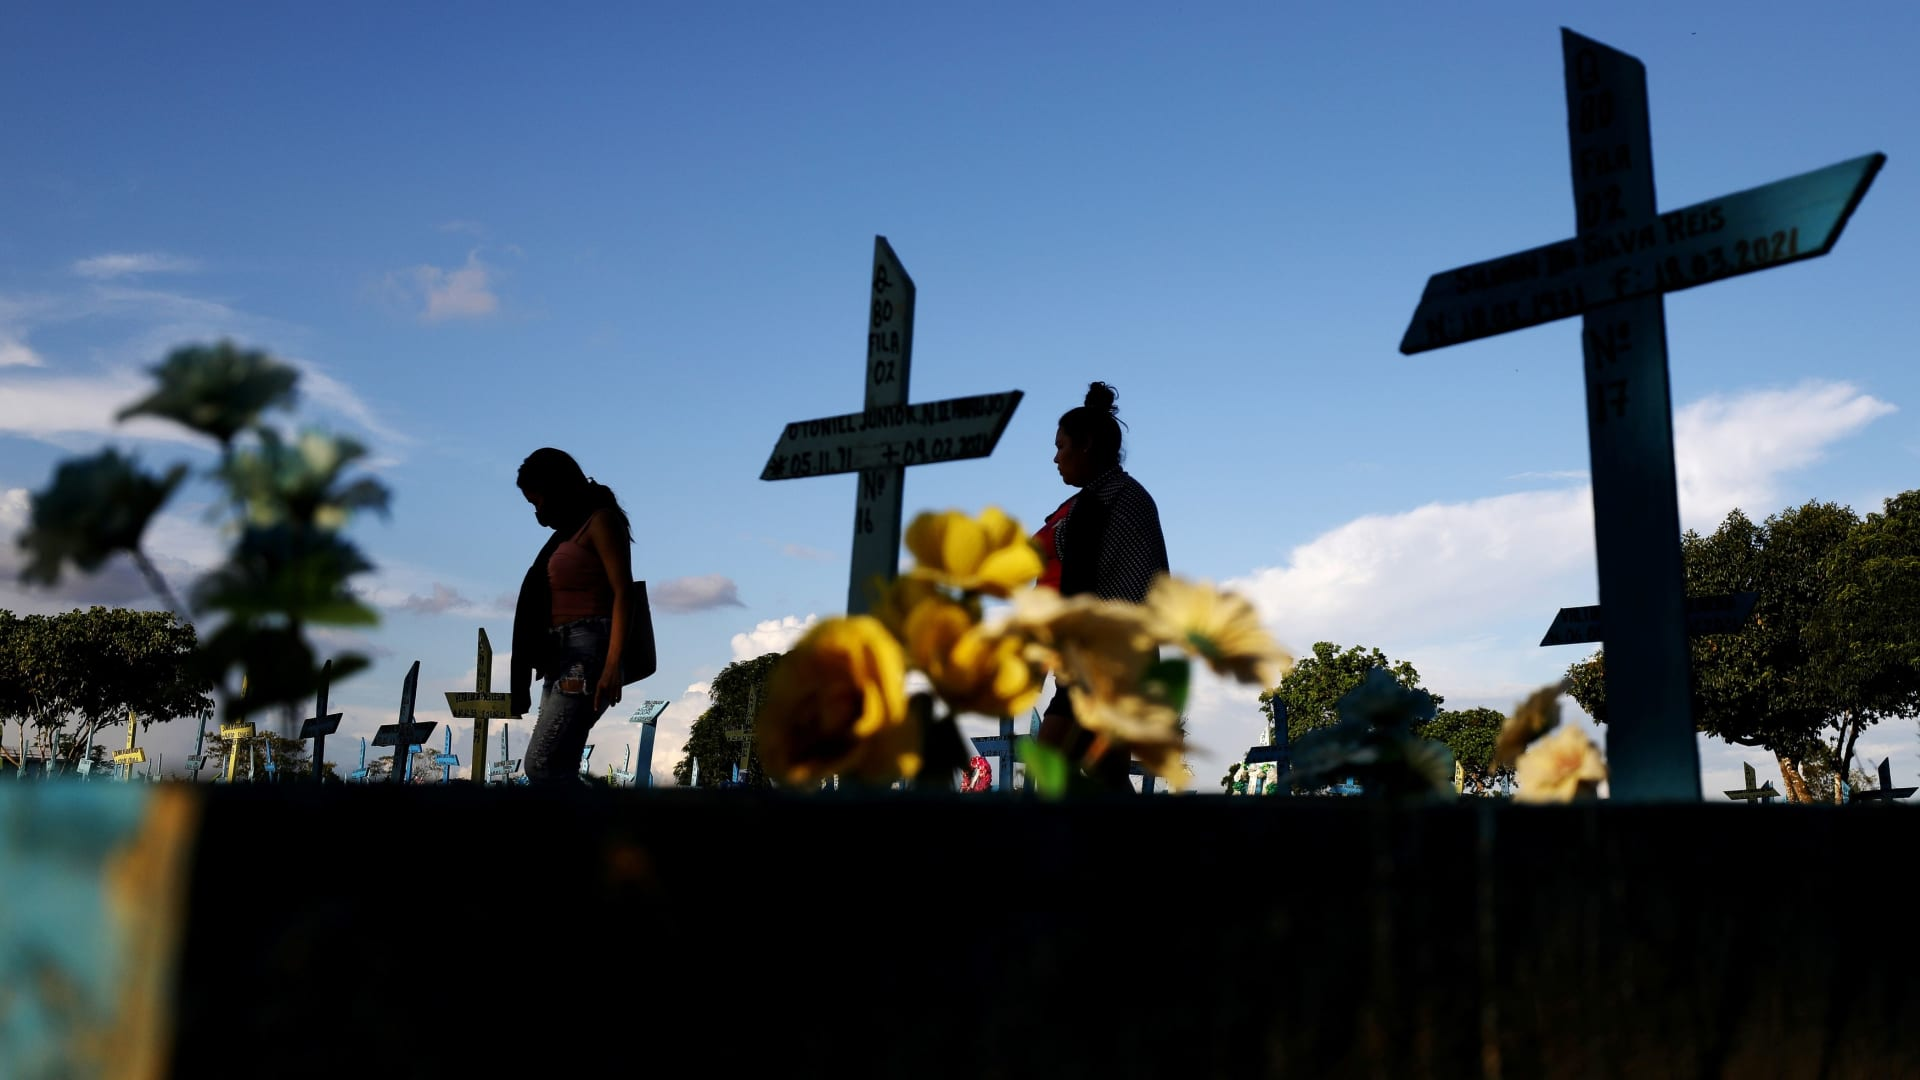 Two women walk next to graves of people who passed away due to the coronavirus disease (COVID-19) at the Parque Taruma cemetery in Manaus, Brazil May 20, 2021.